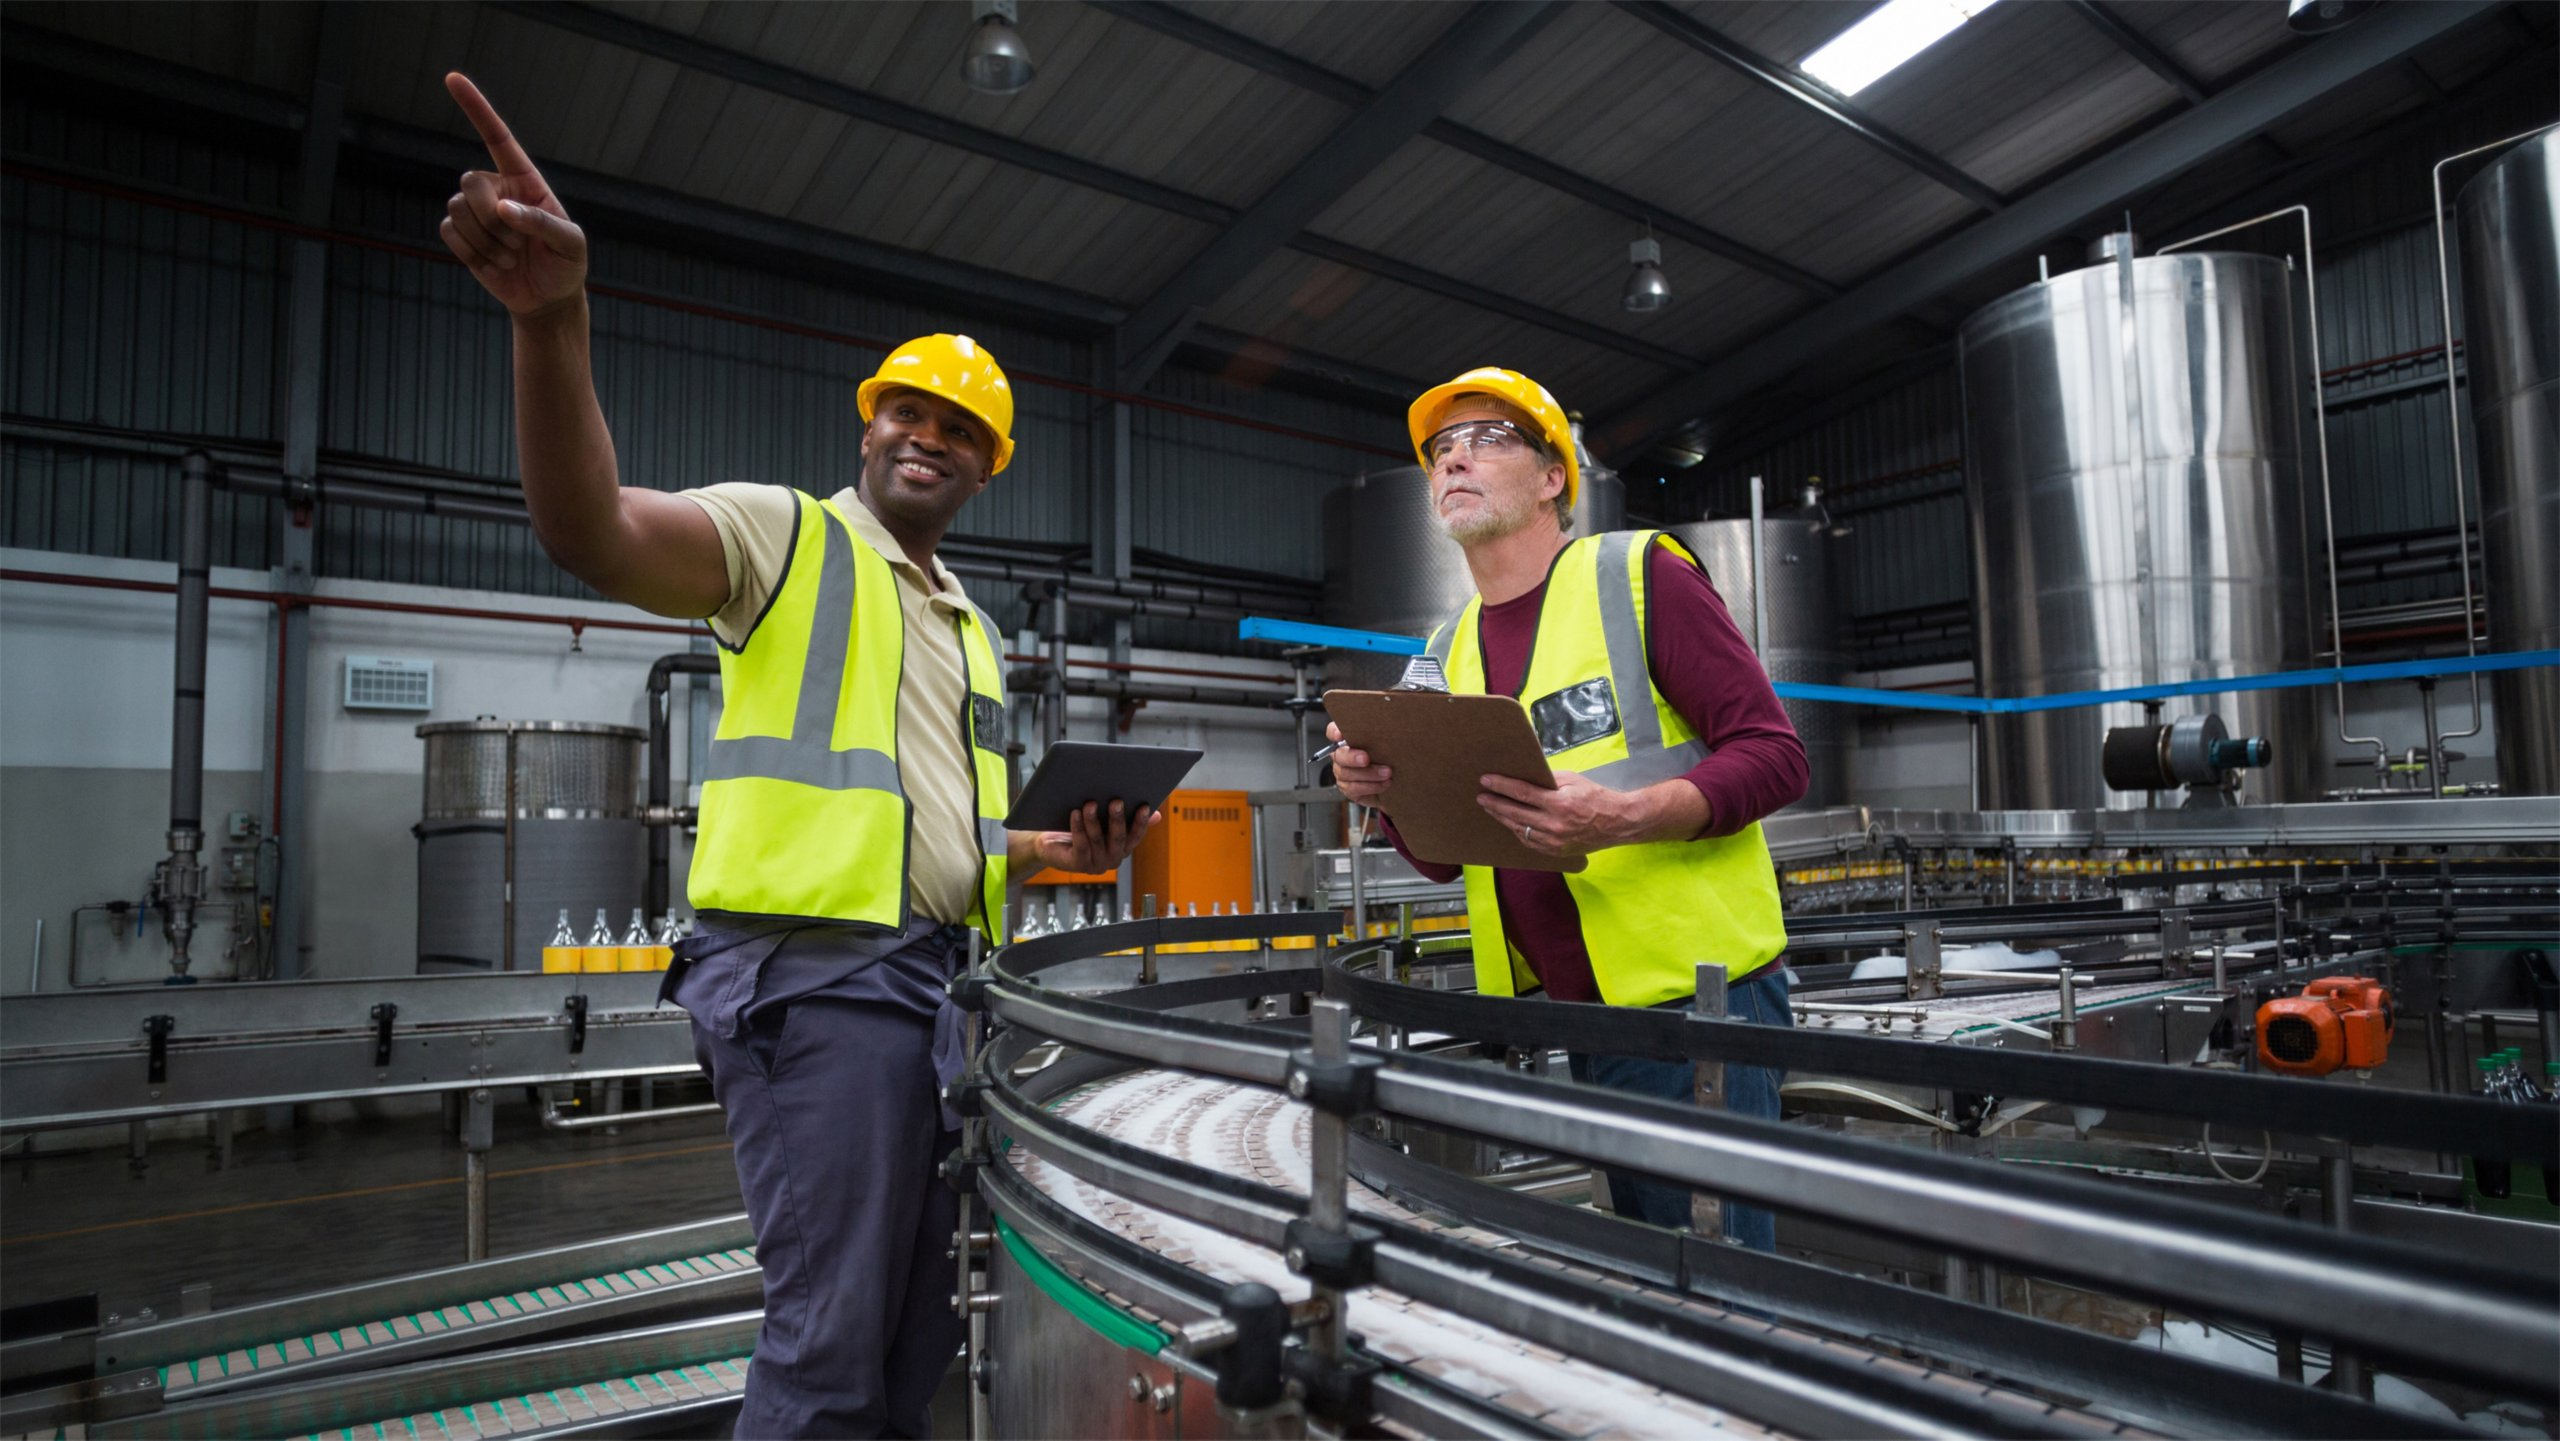 Two plant workers stand near manufacturing line sharing information on tablet and clipboard